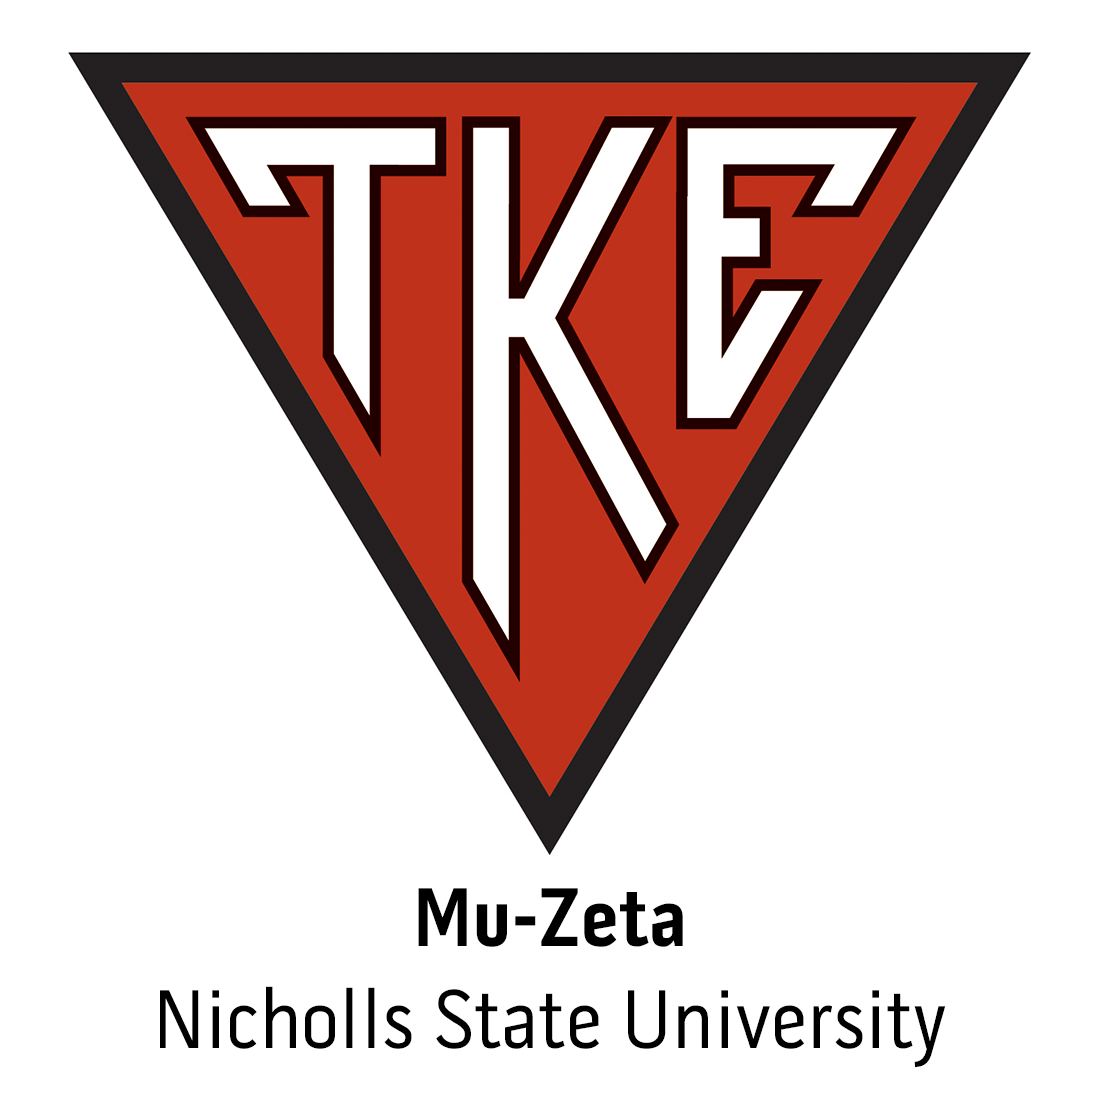 Mu-Zeta Chapter at Nicholls State University